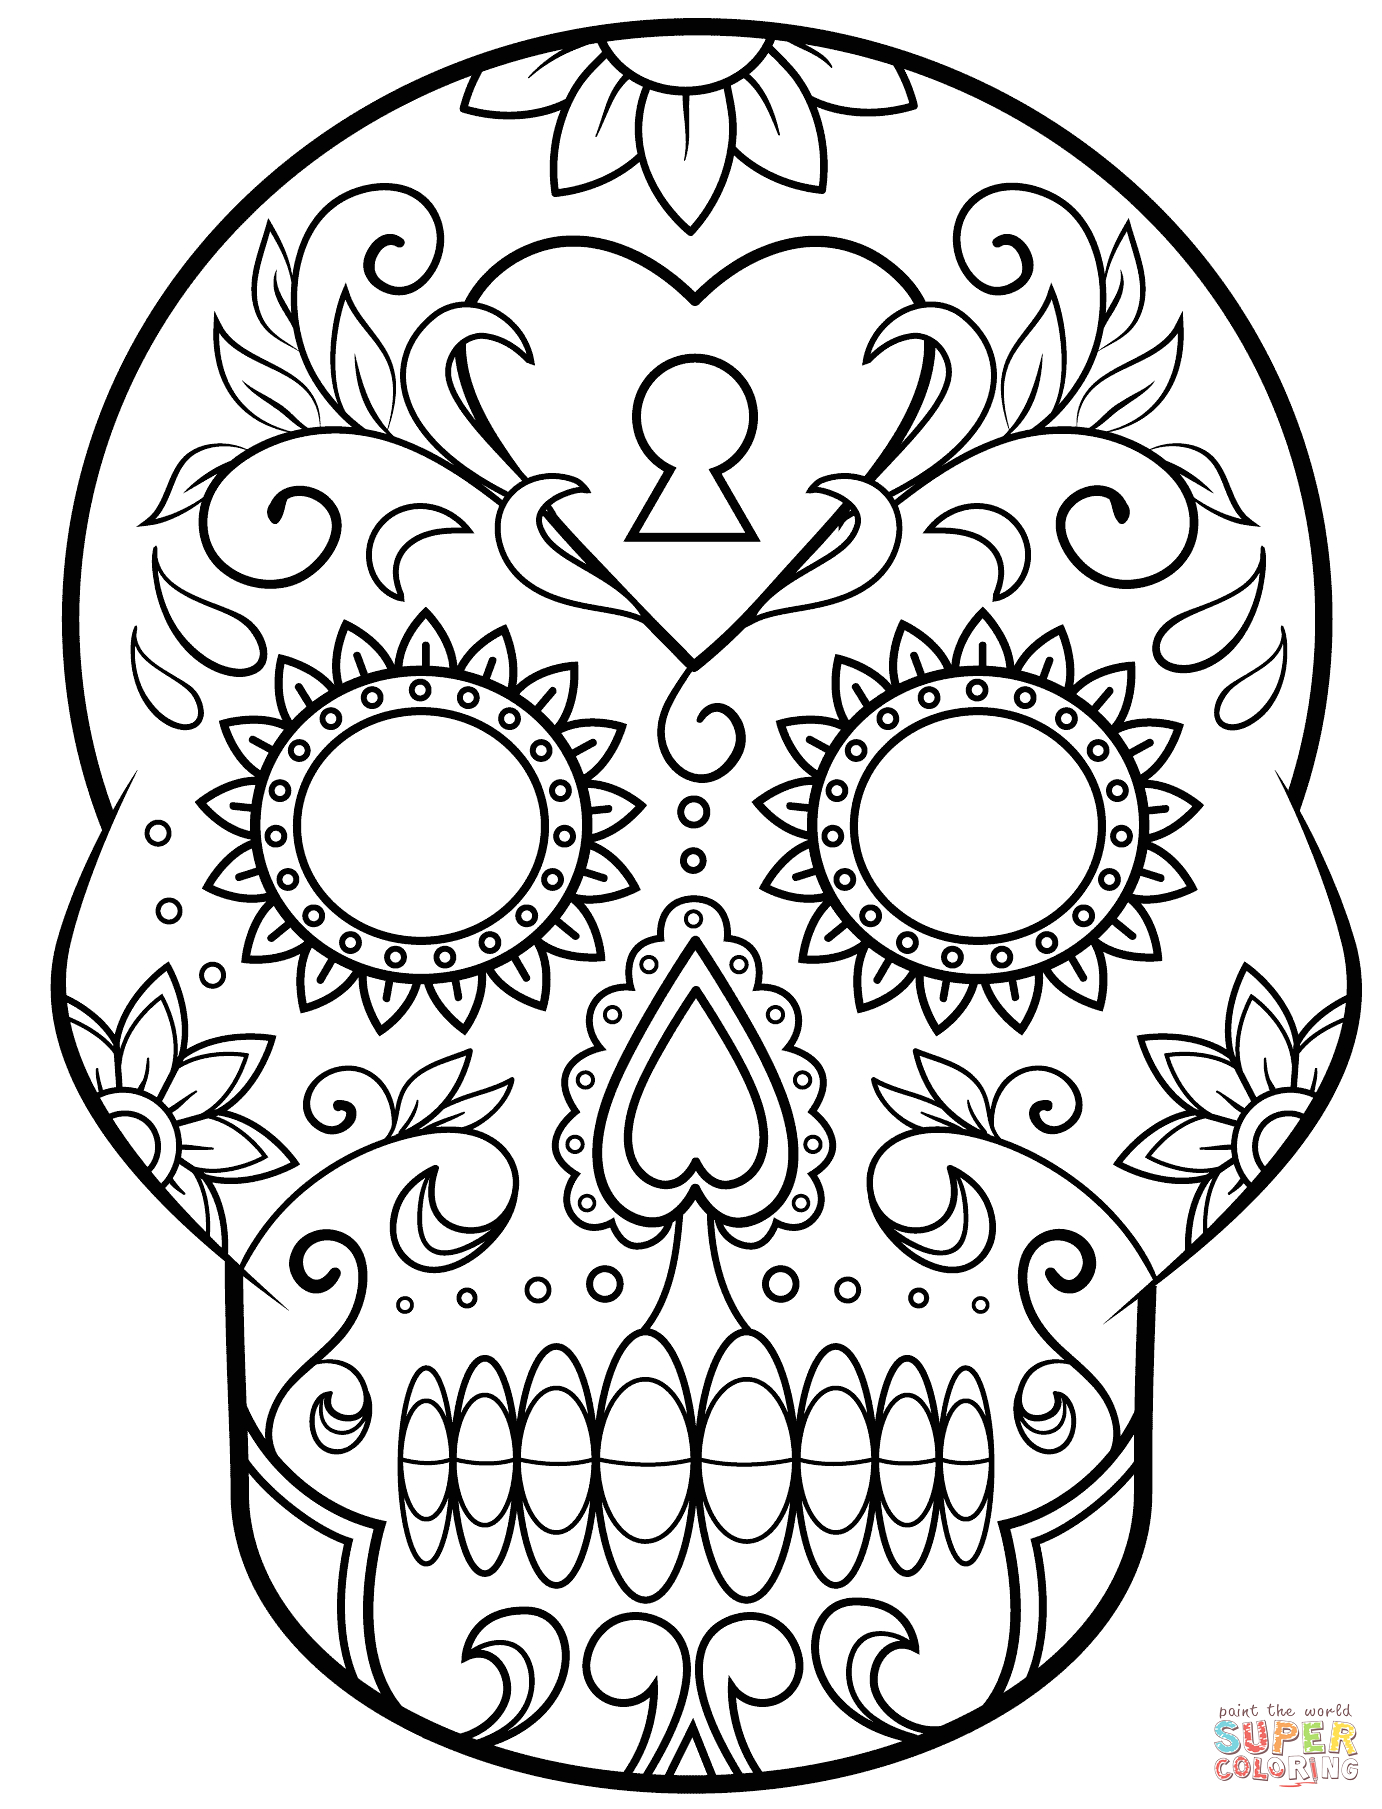 Day Of the Dead Sugar Skull Coloring Pages Day Of the Dead Sugar Skull Coloring Page